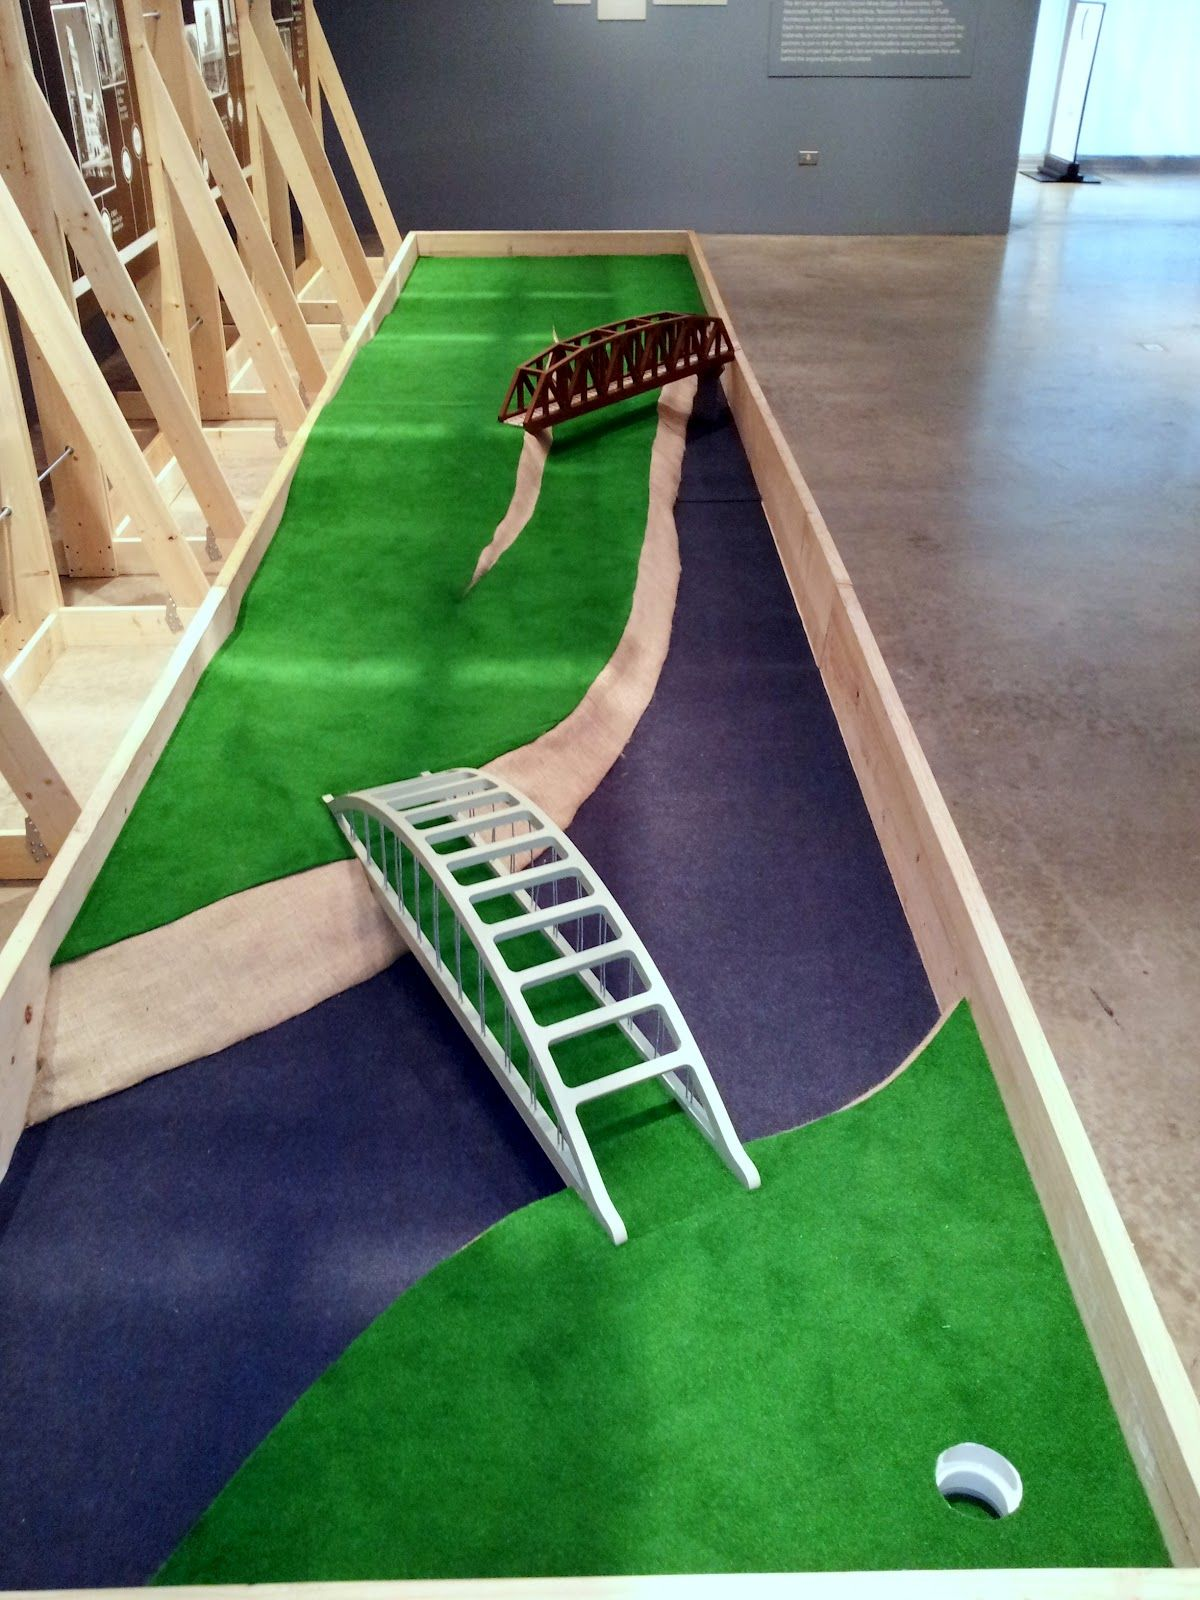 Super Indoor Miniature Golf Course Design Google Search Mini Download Free Architecture Designs Intelgarnamadebymaigaardcom